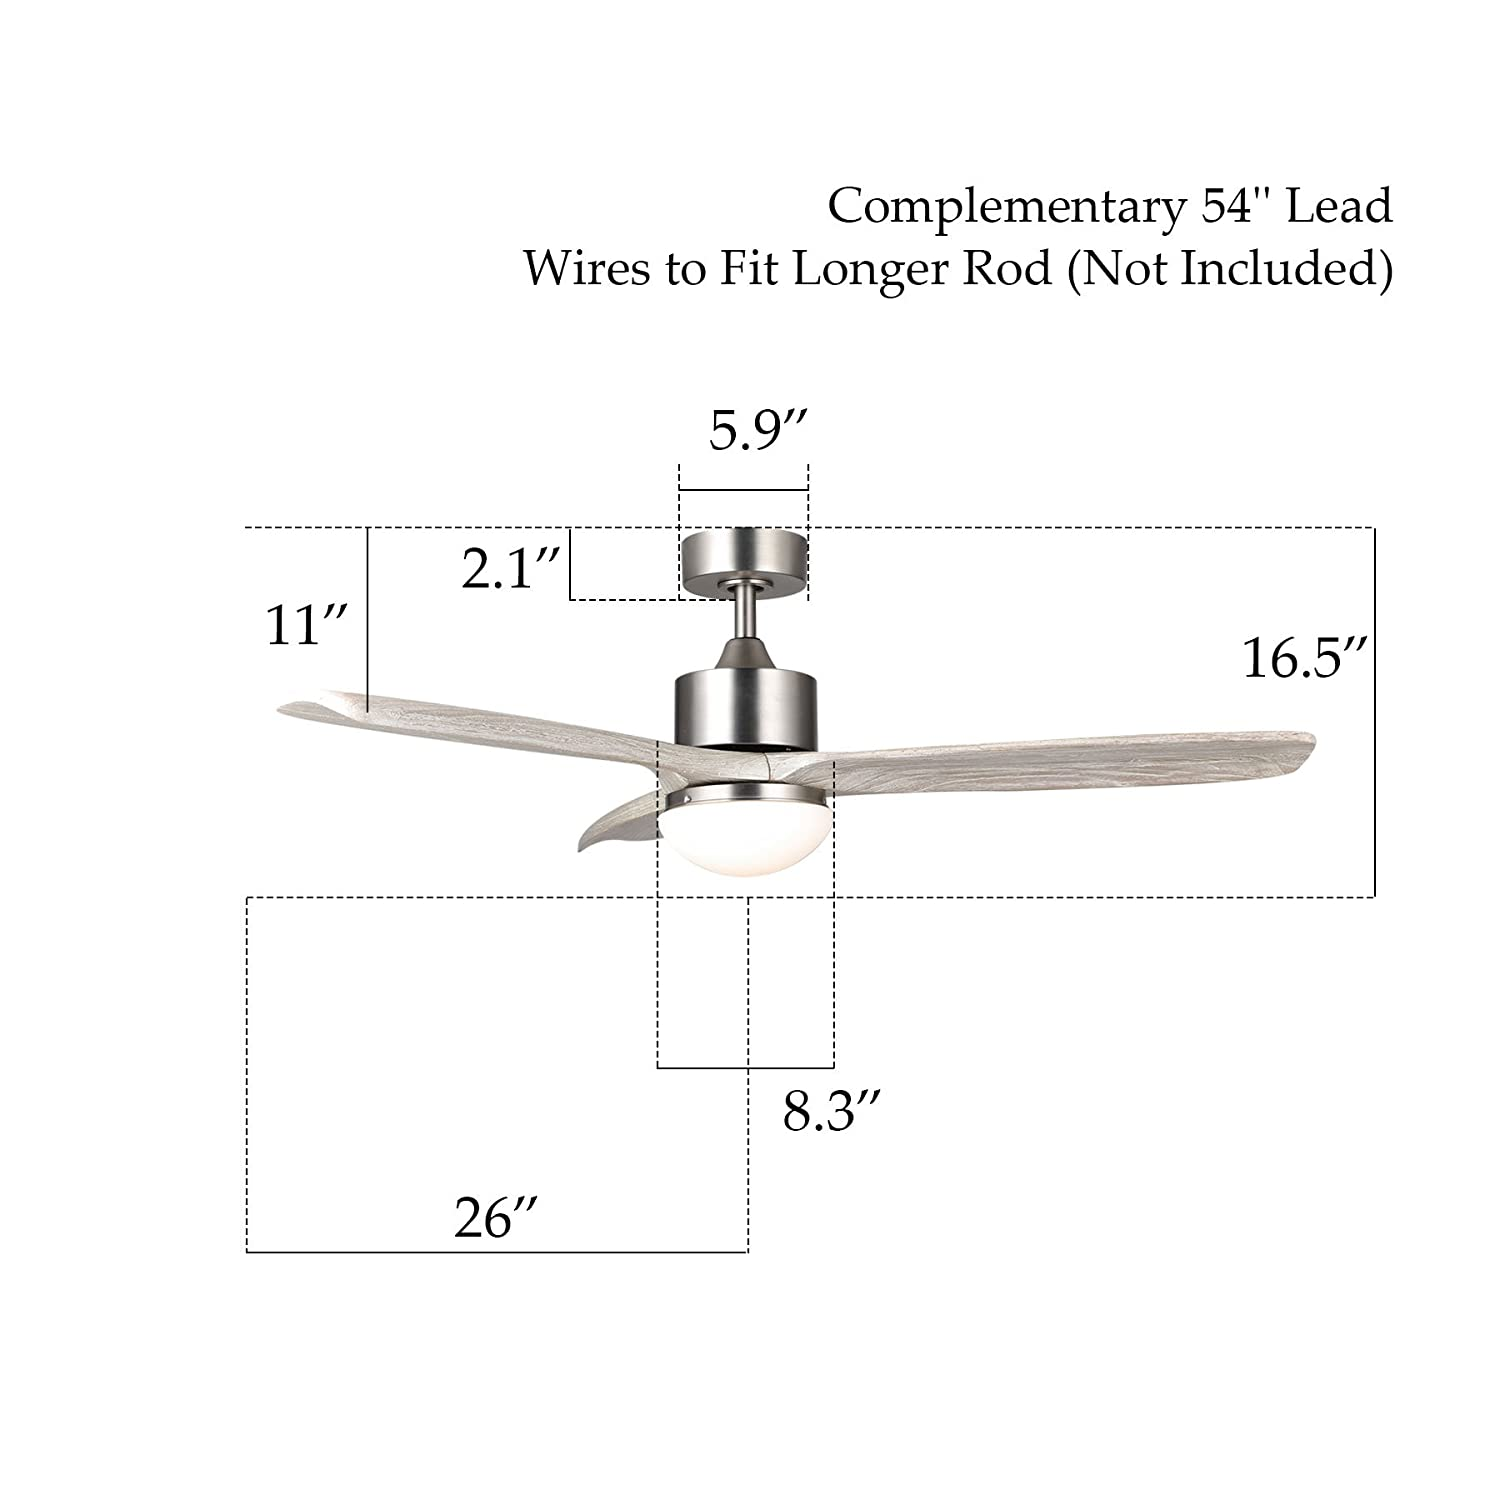 Co Z 52 Ceiling Fan Light Brushed Nickel Finish With 3 Weathered Wiring 2 Fans In Series White Walnut Blades 15w Led And Remote Control Included Ul Certificate